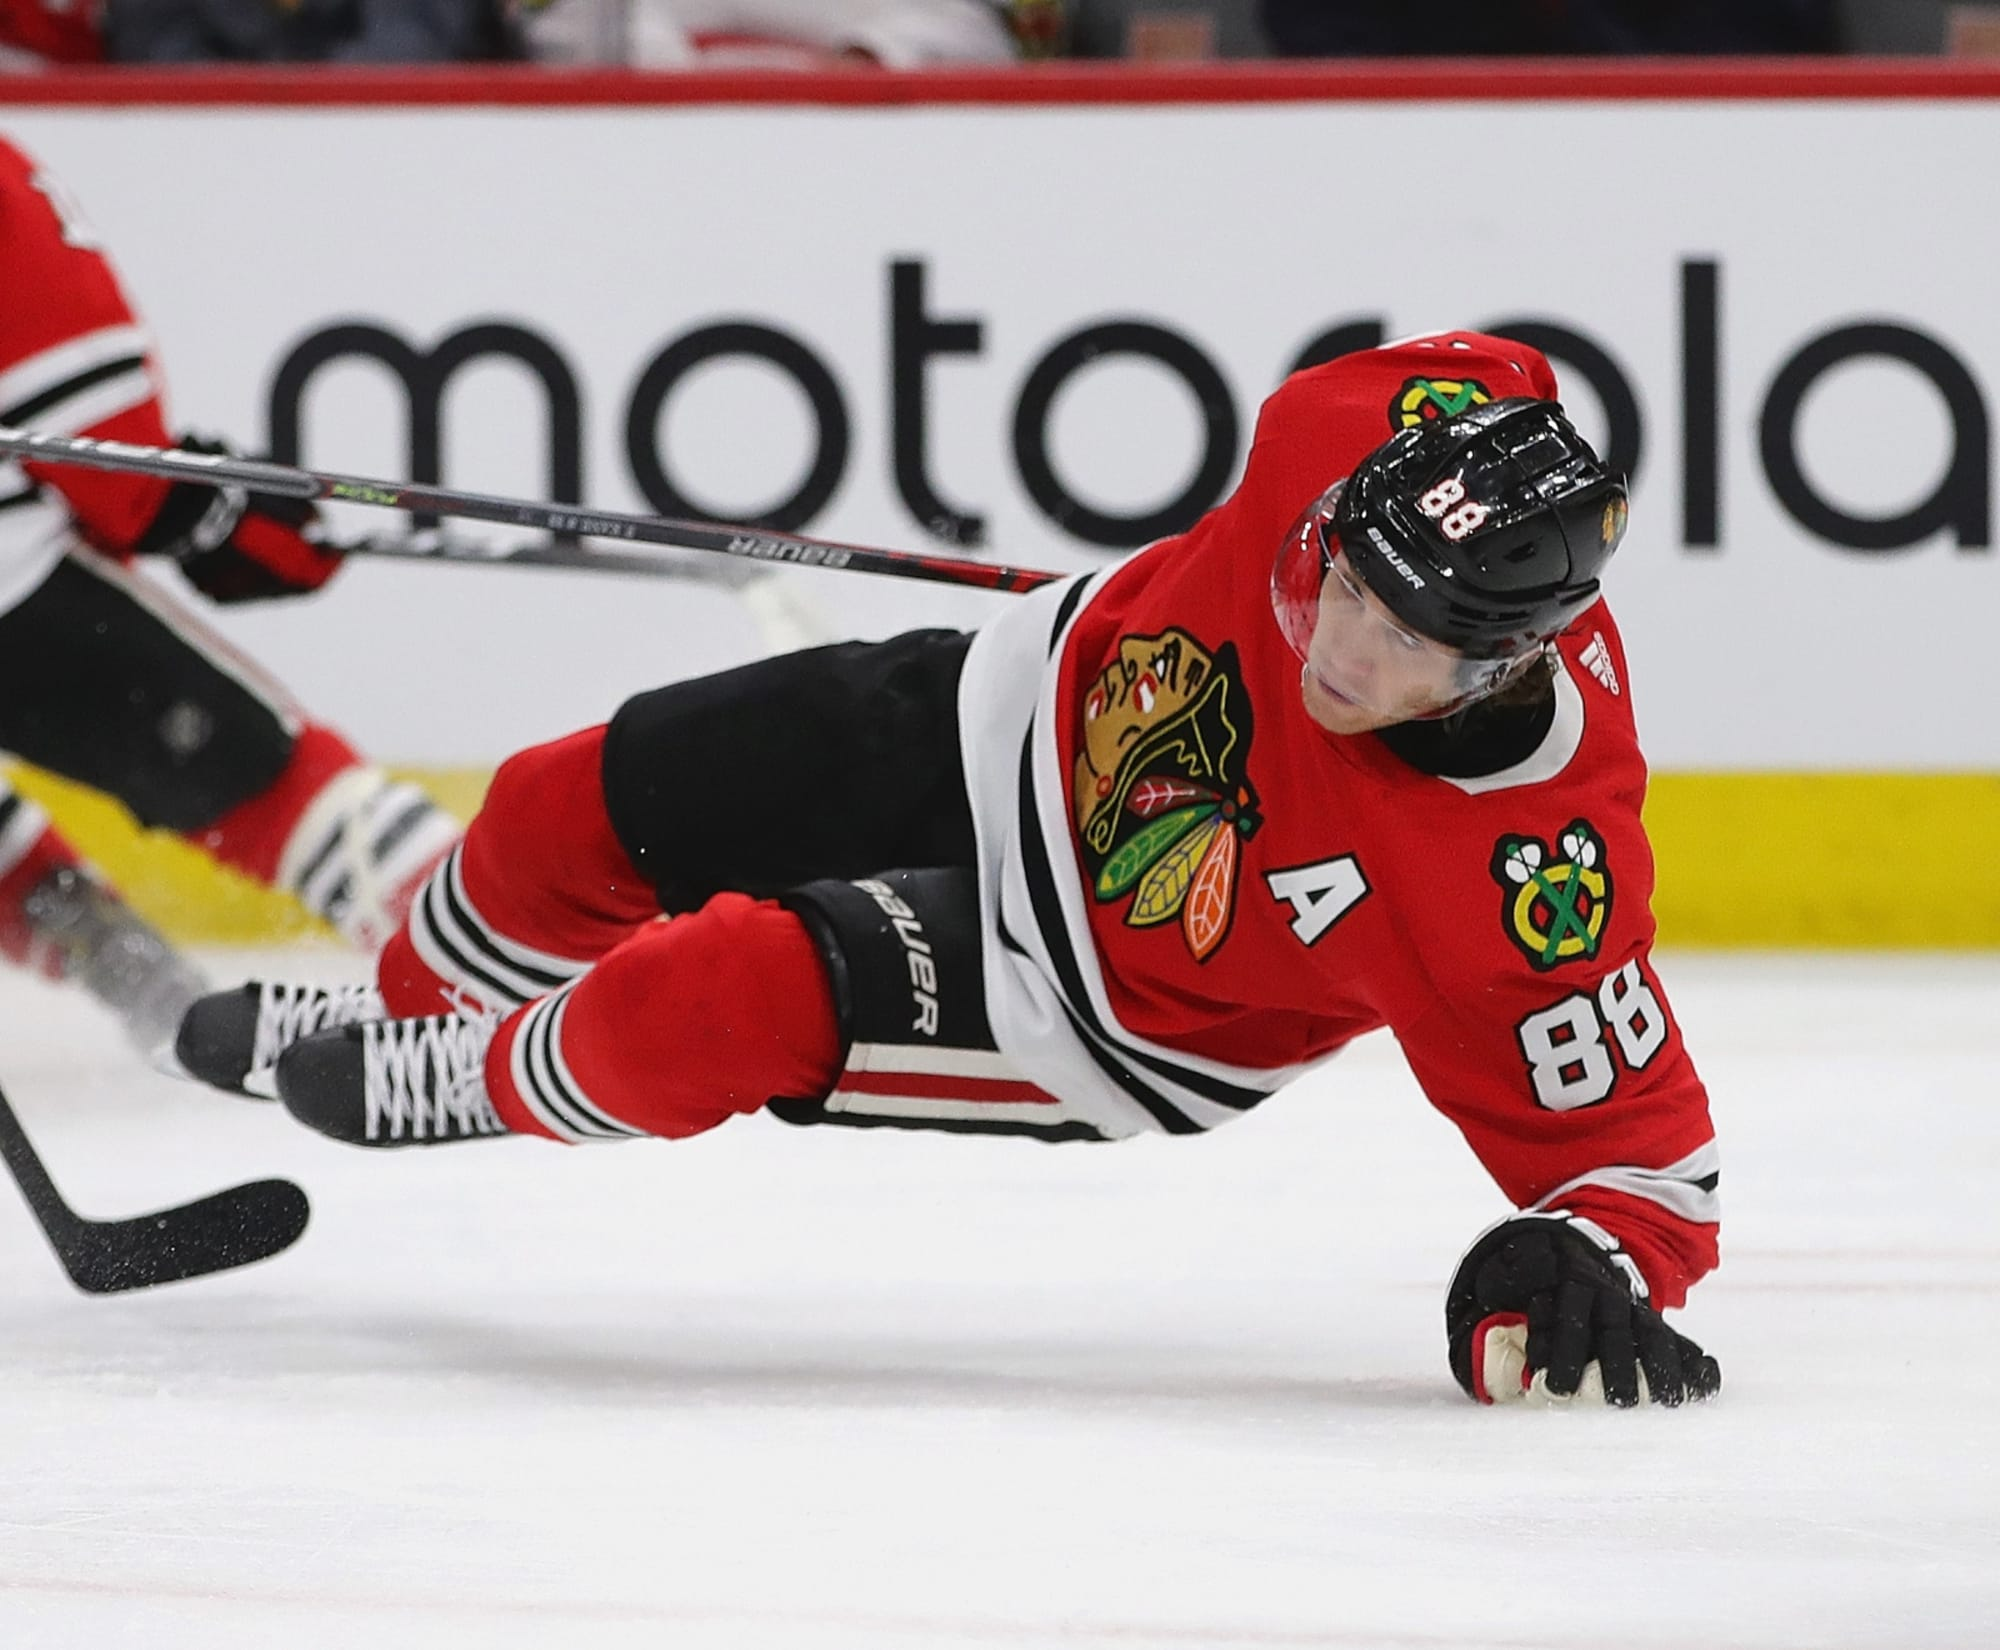 NHL Rumors: 3 teams who should make a trade offer for Patrick Kane